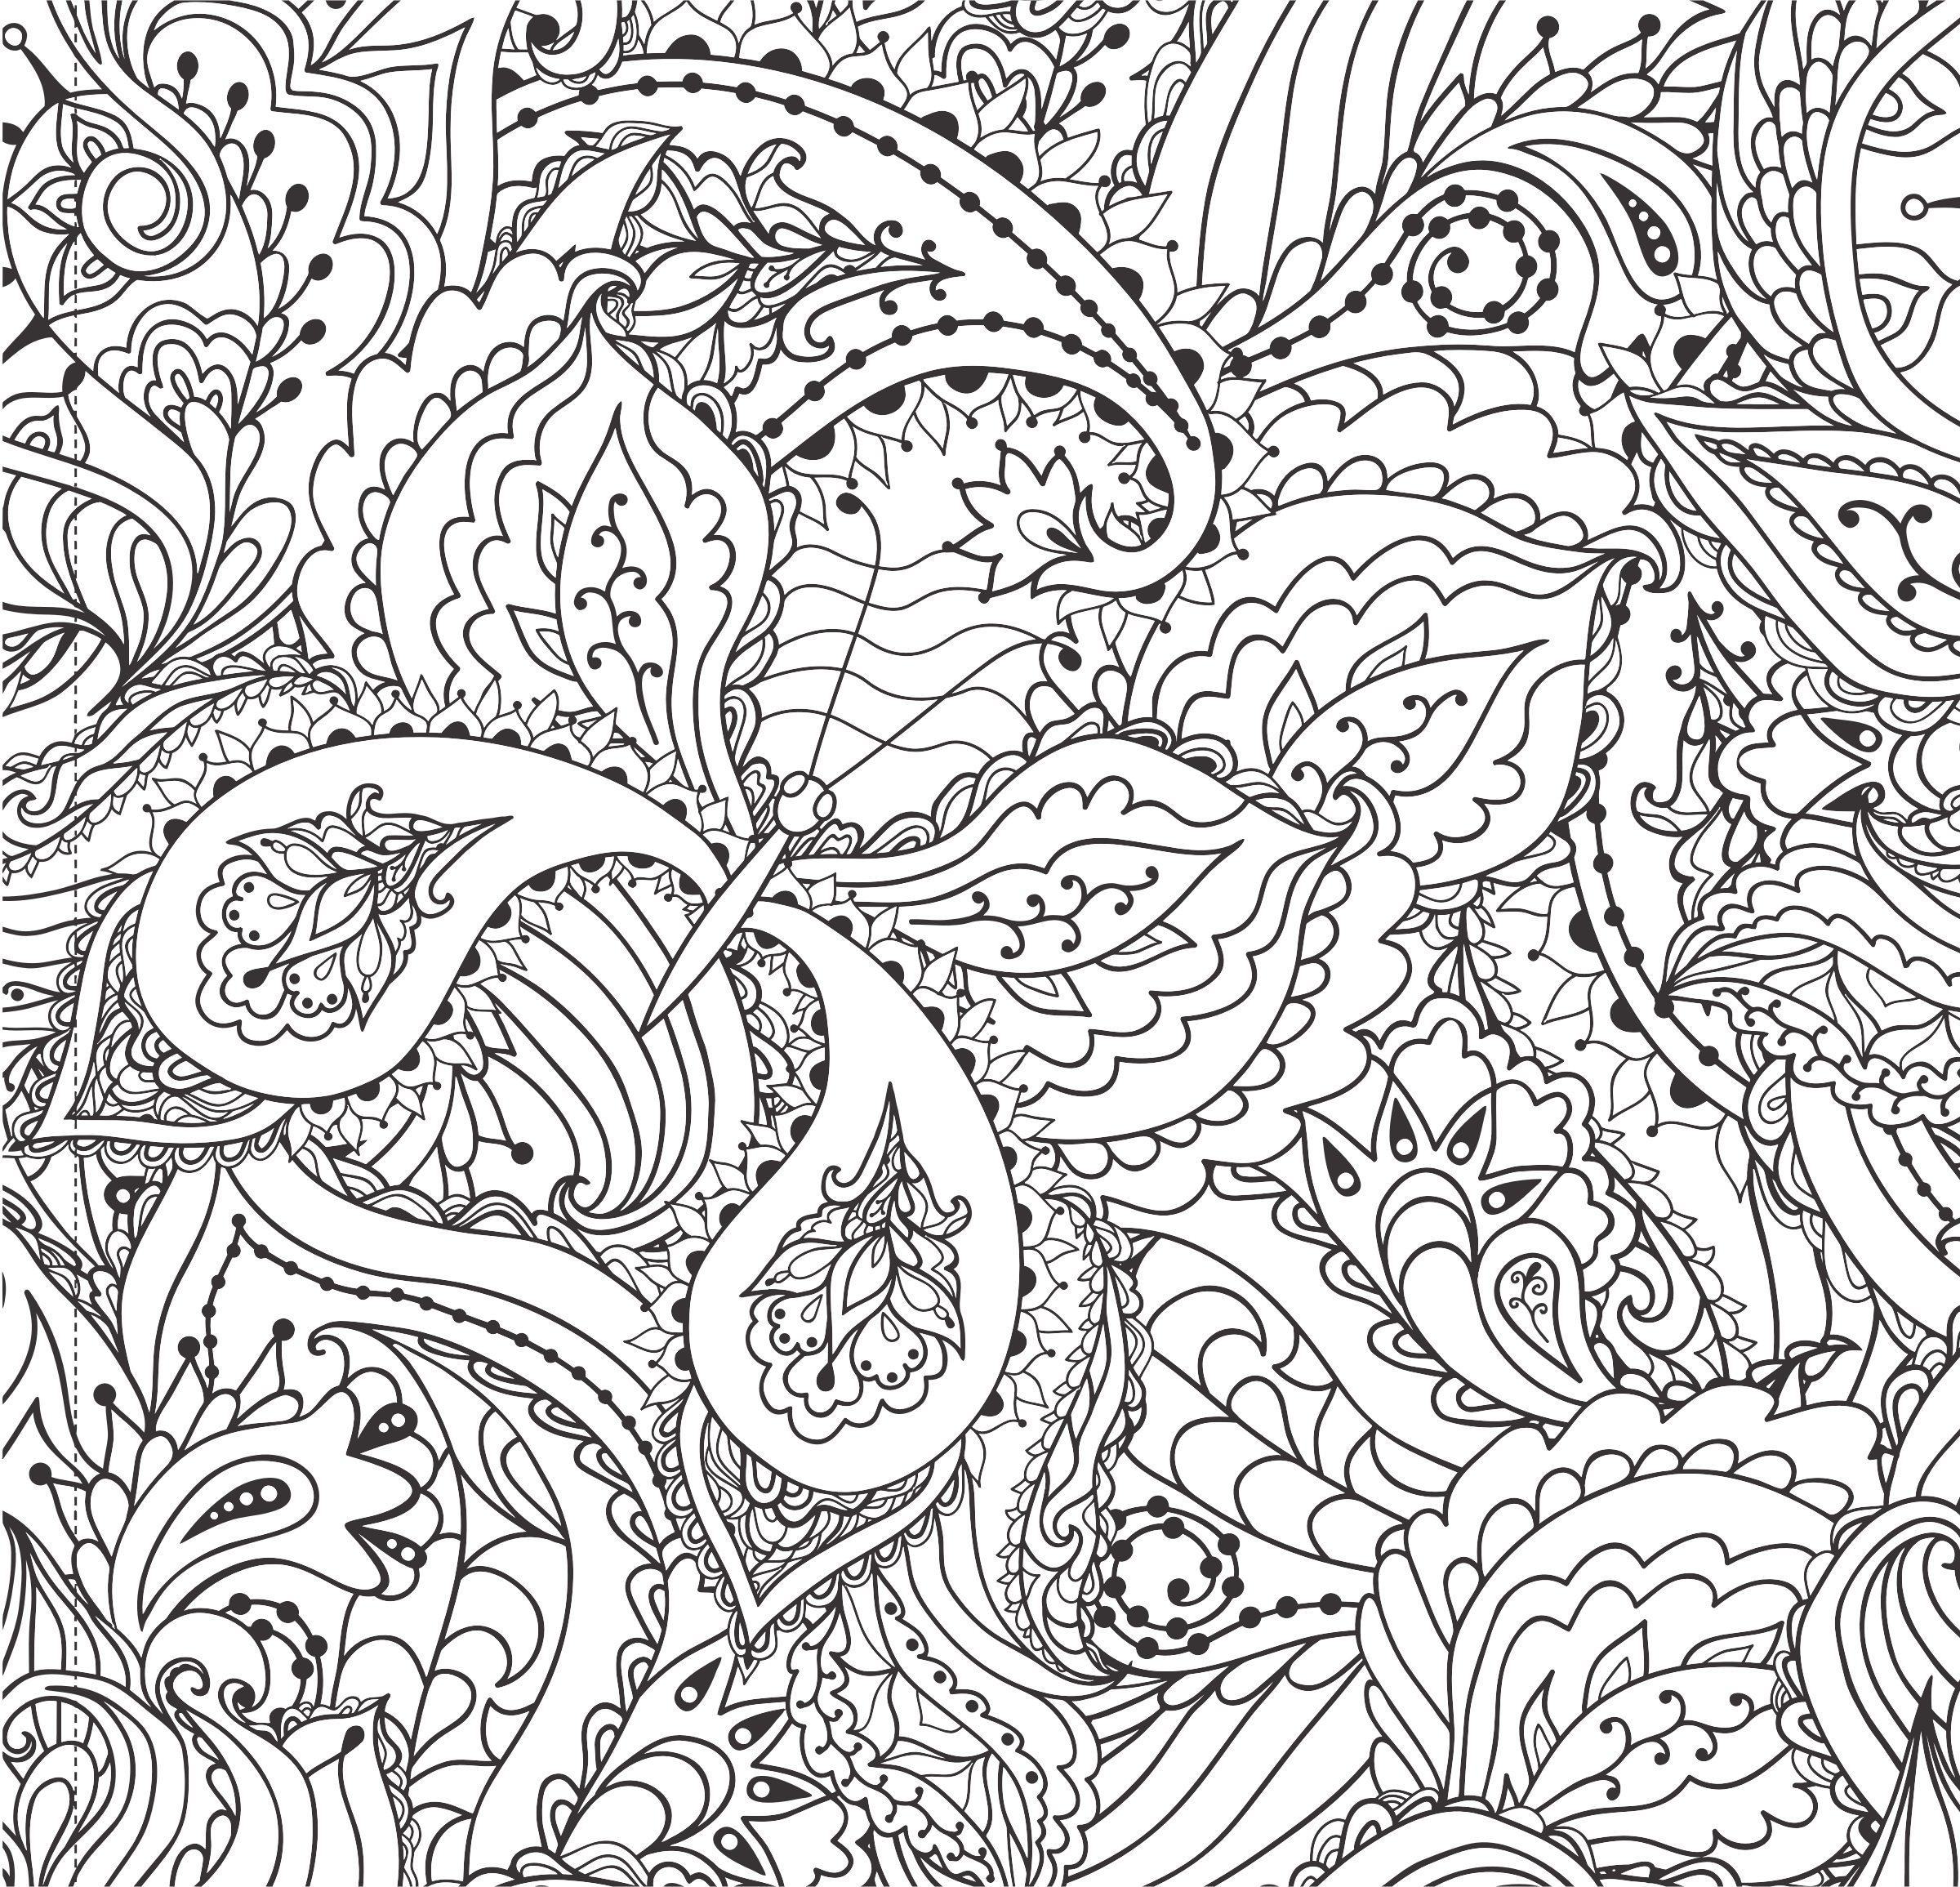 Decorative Floral Butterfly Line Art by GDJ